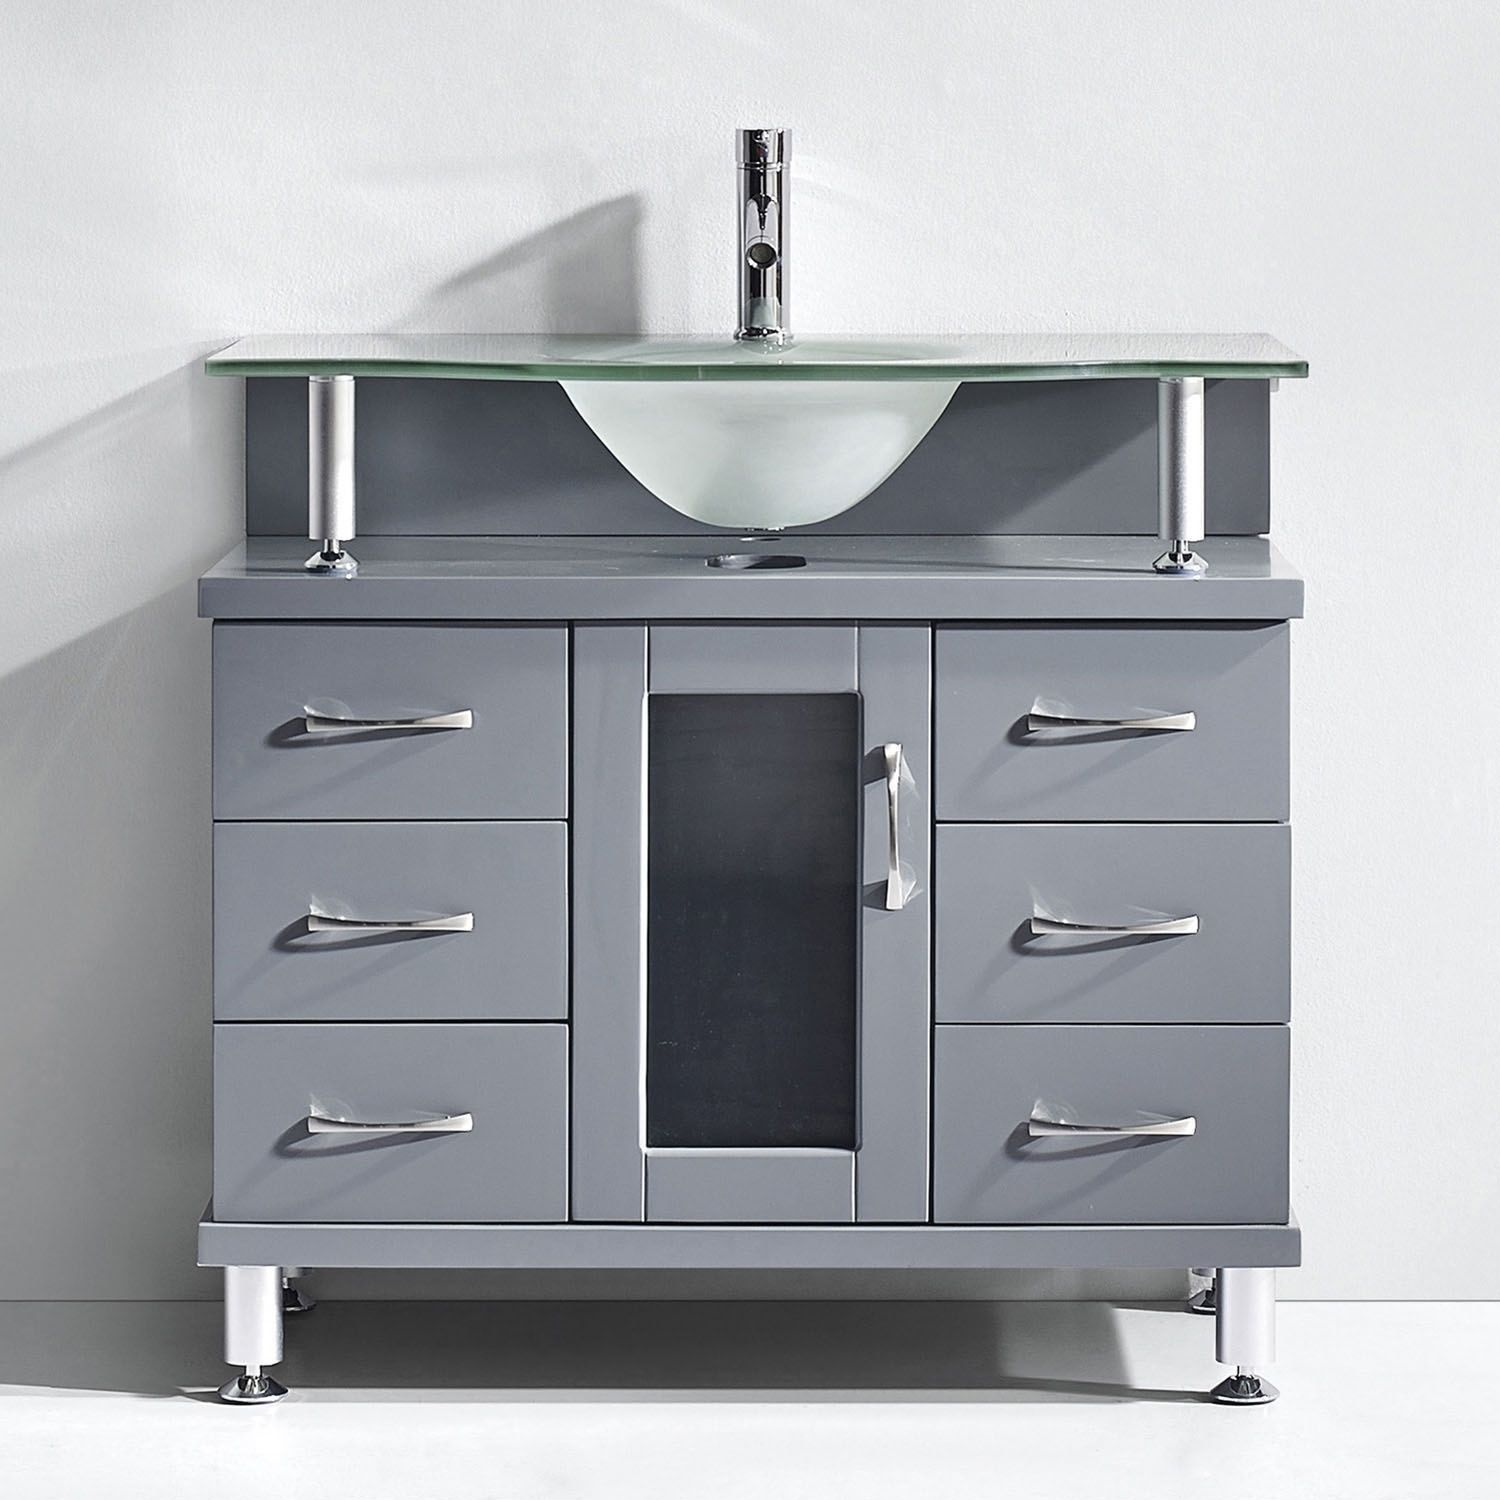 vanity gray on faux bathroom size grey vessel of uniqueness deep cabinet drawers etching separate door venica vanities to the each wash teak with narrow your full illusion creates sink